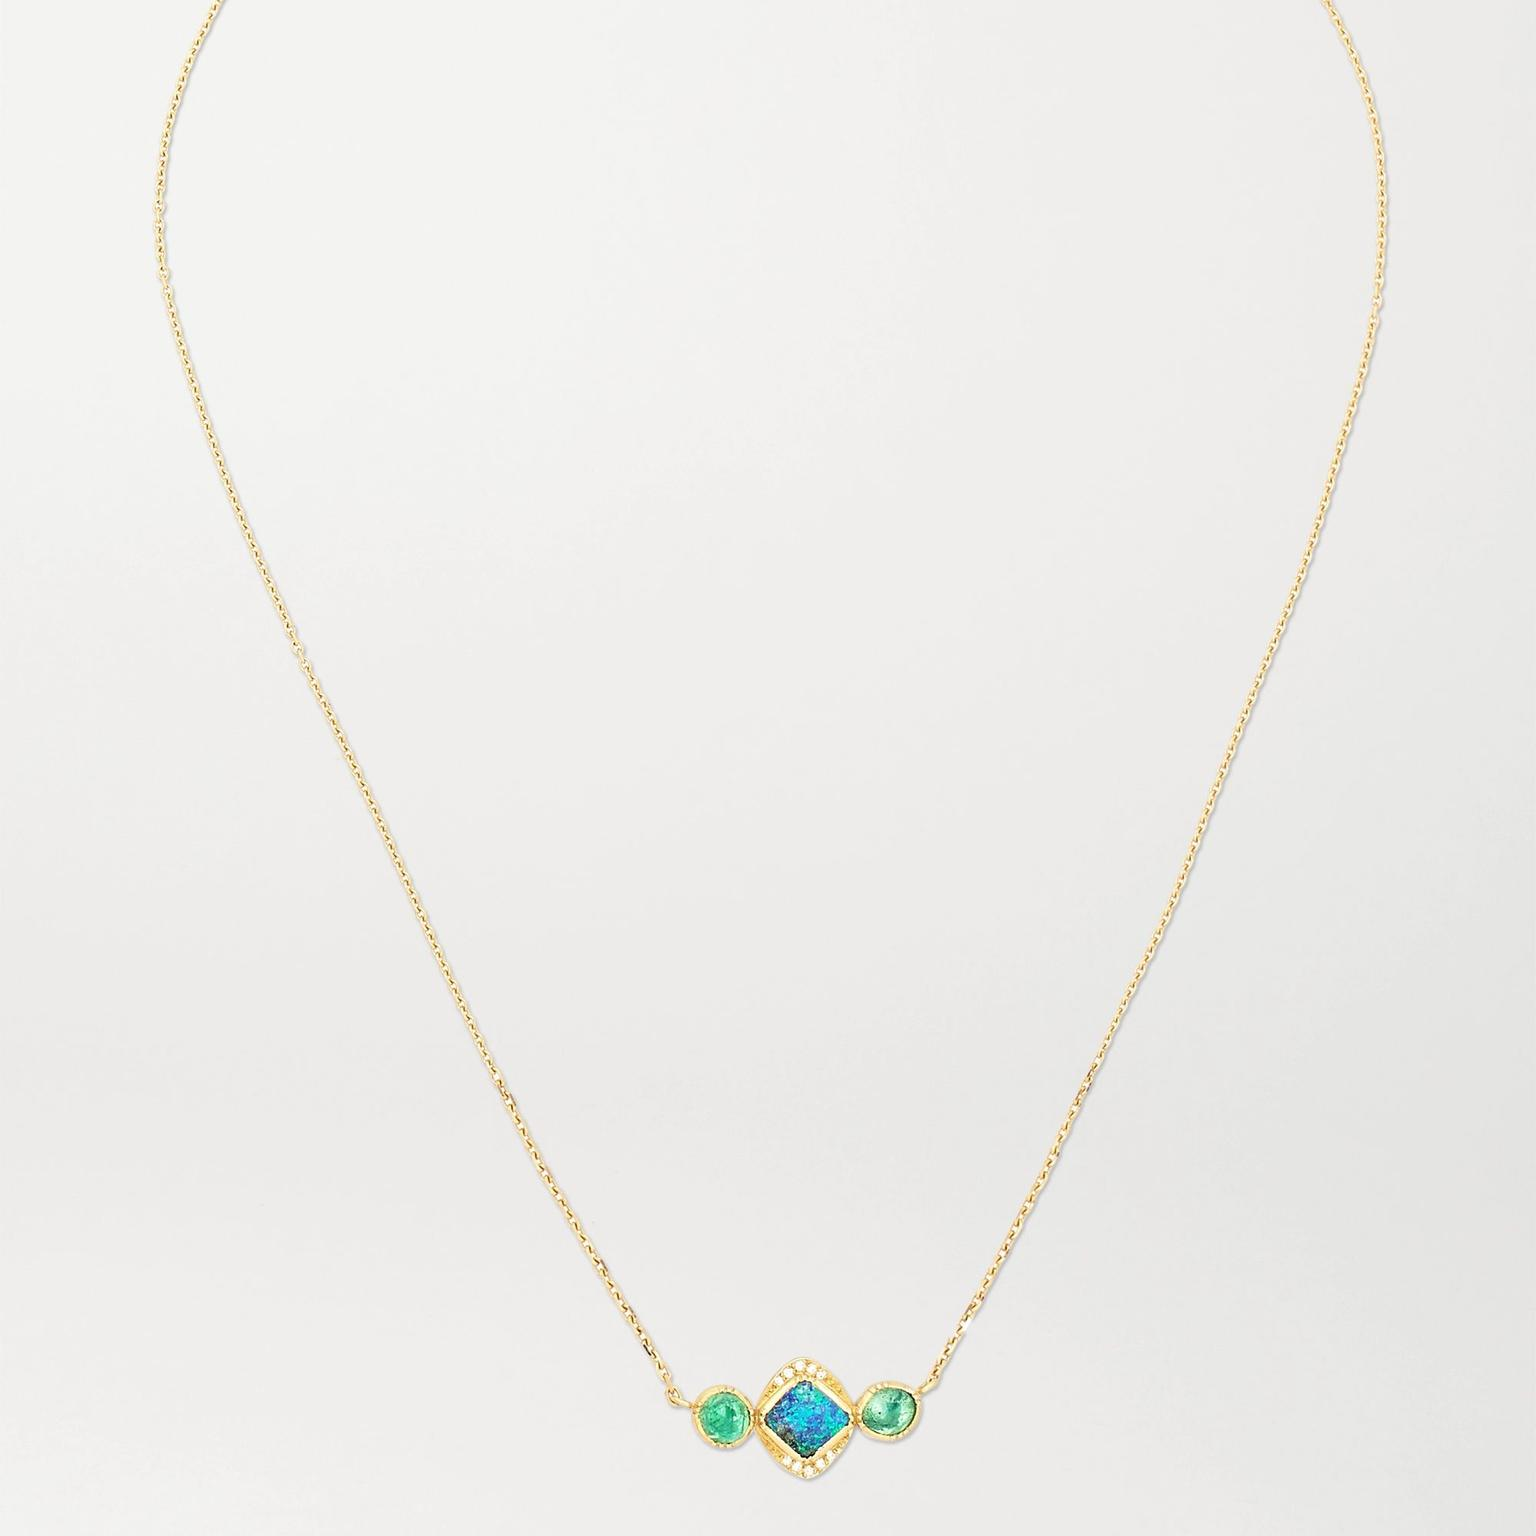 Orbit necklace by Brooke Gregson